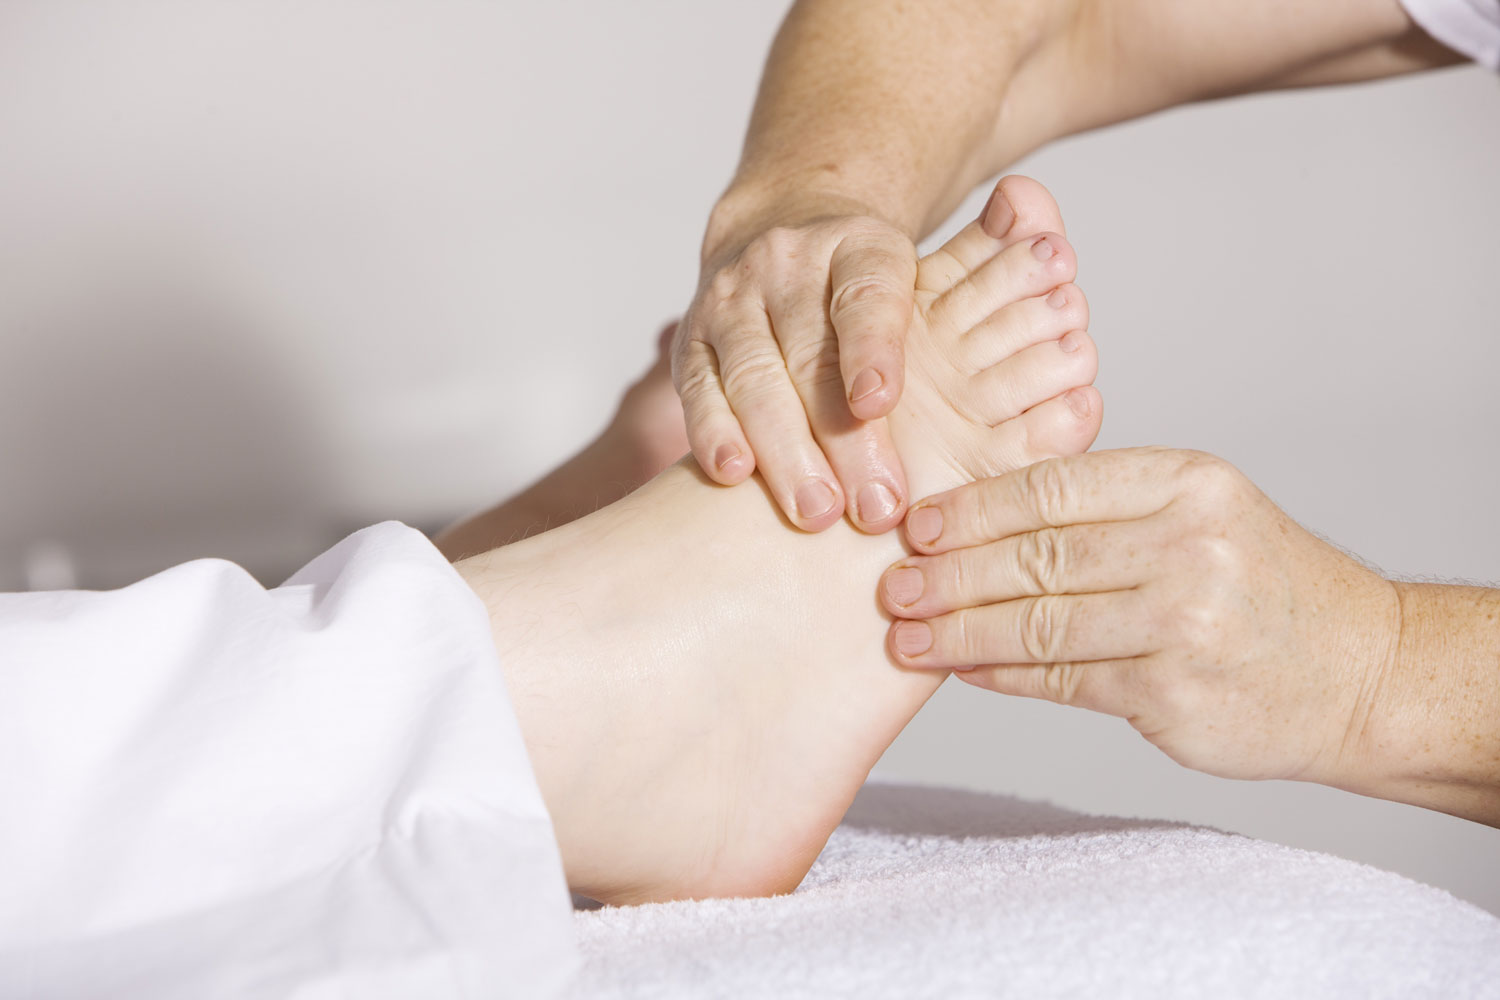 Chiropodist virtual pa (personal assistant) services